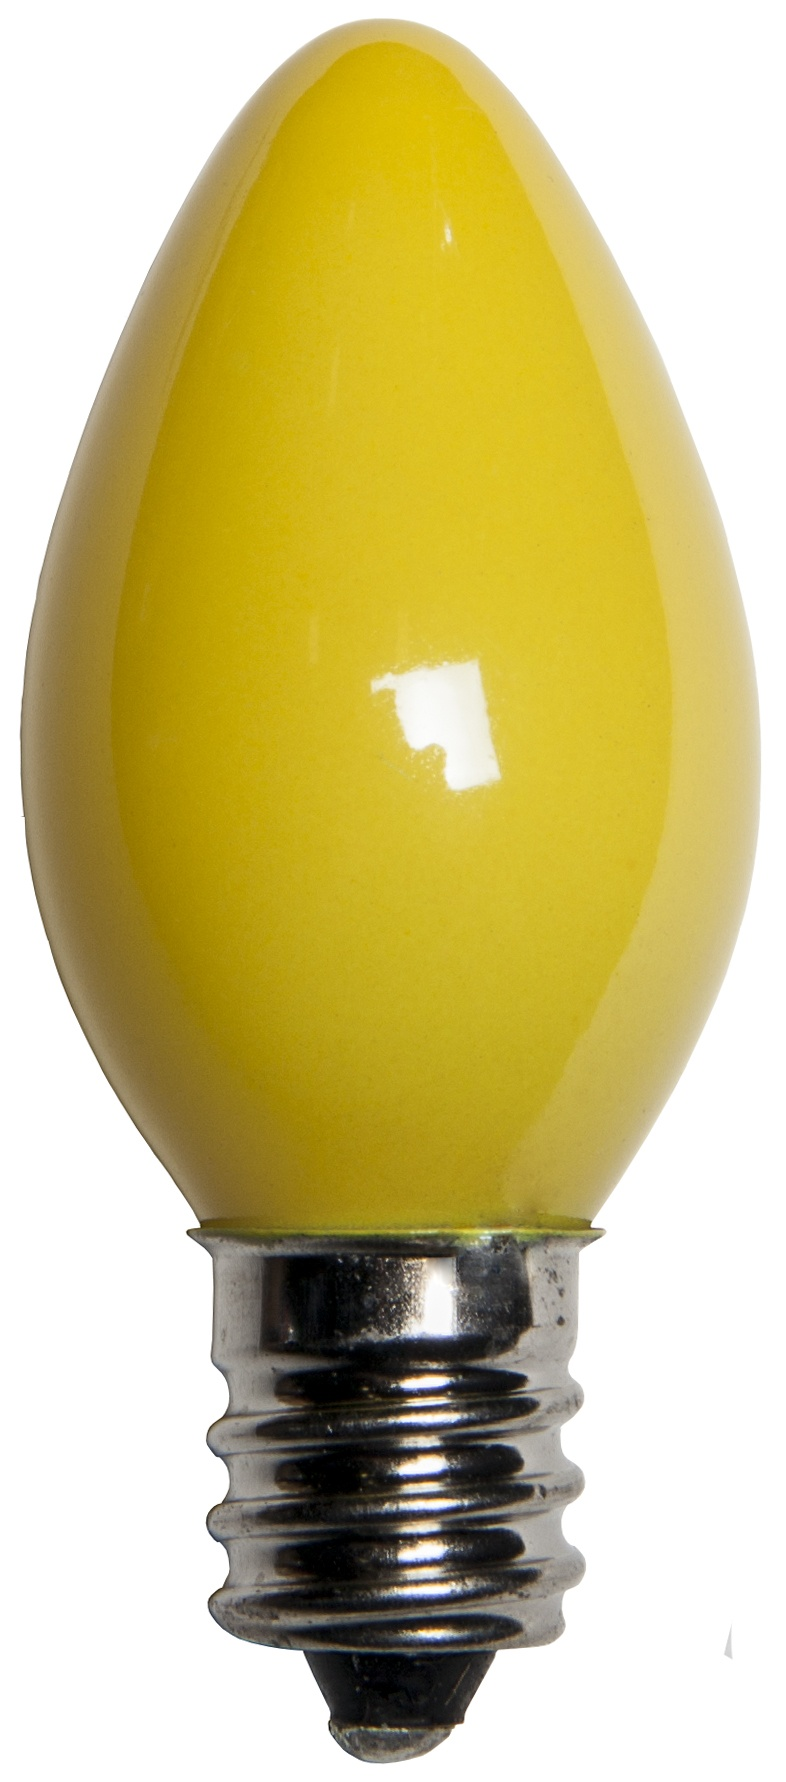 c7 christmas light bulb c7 yellow christmas light bulbs opaque. Black Bedroom Furniture Sets. Home Design Ideas